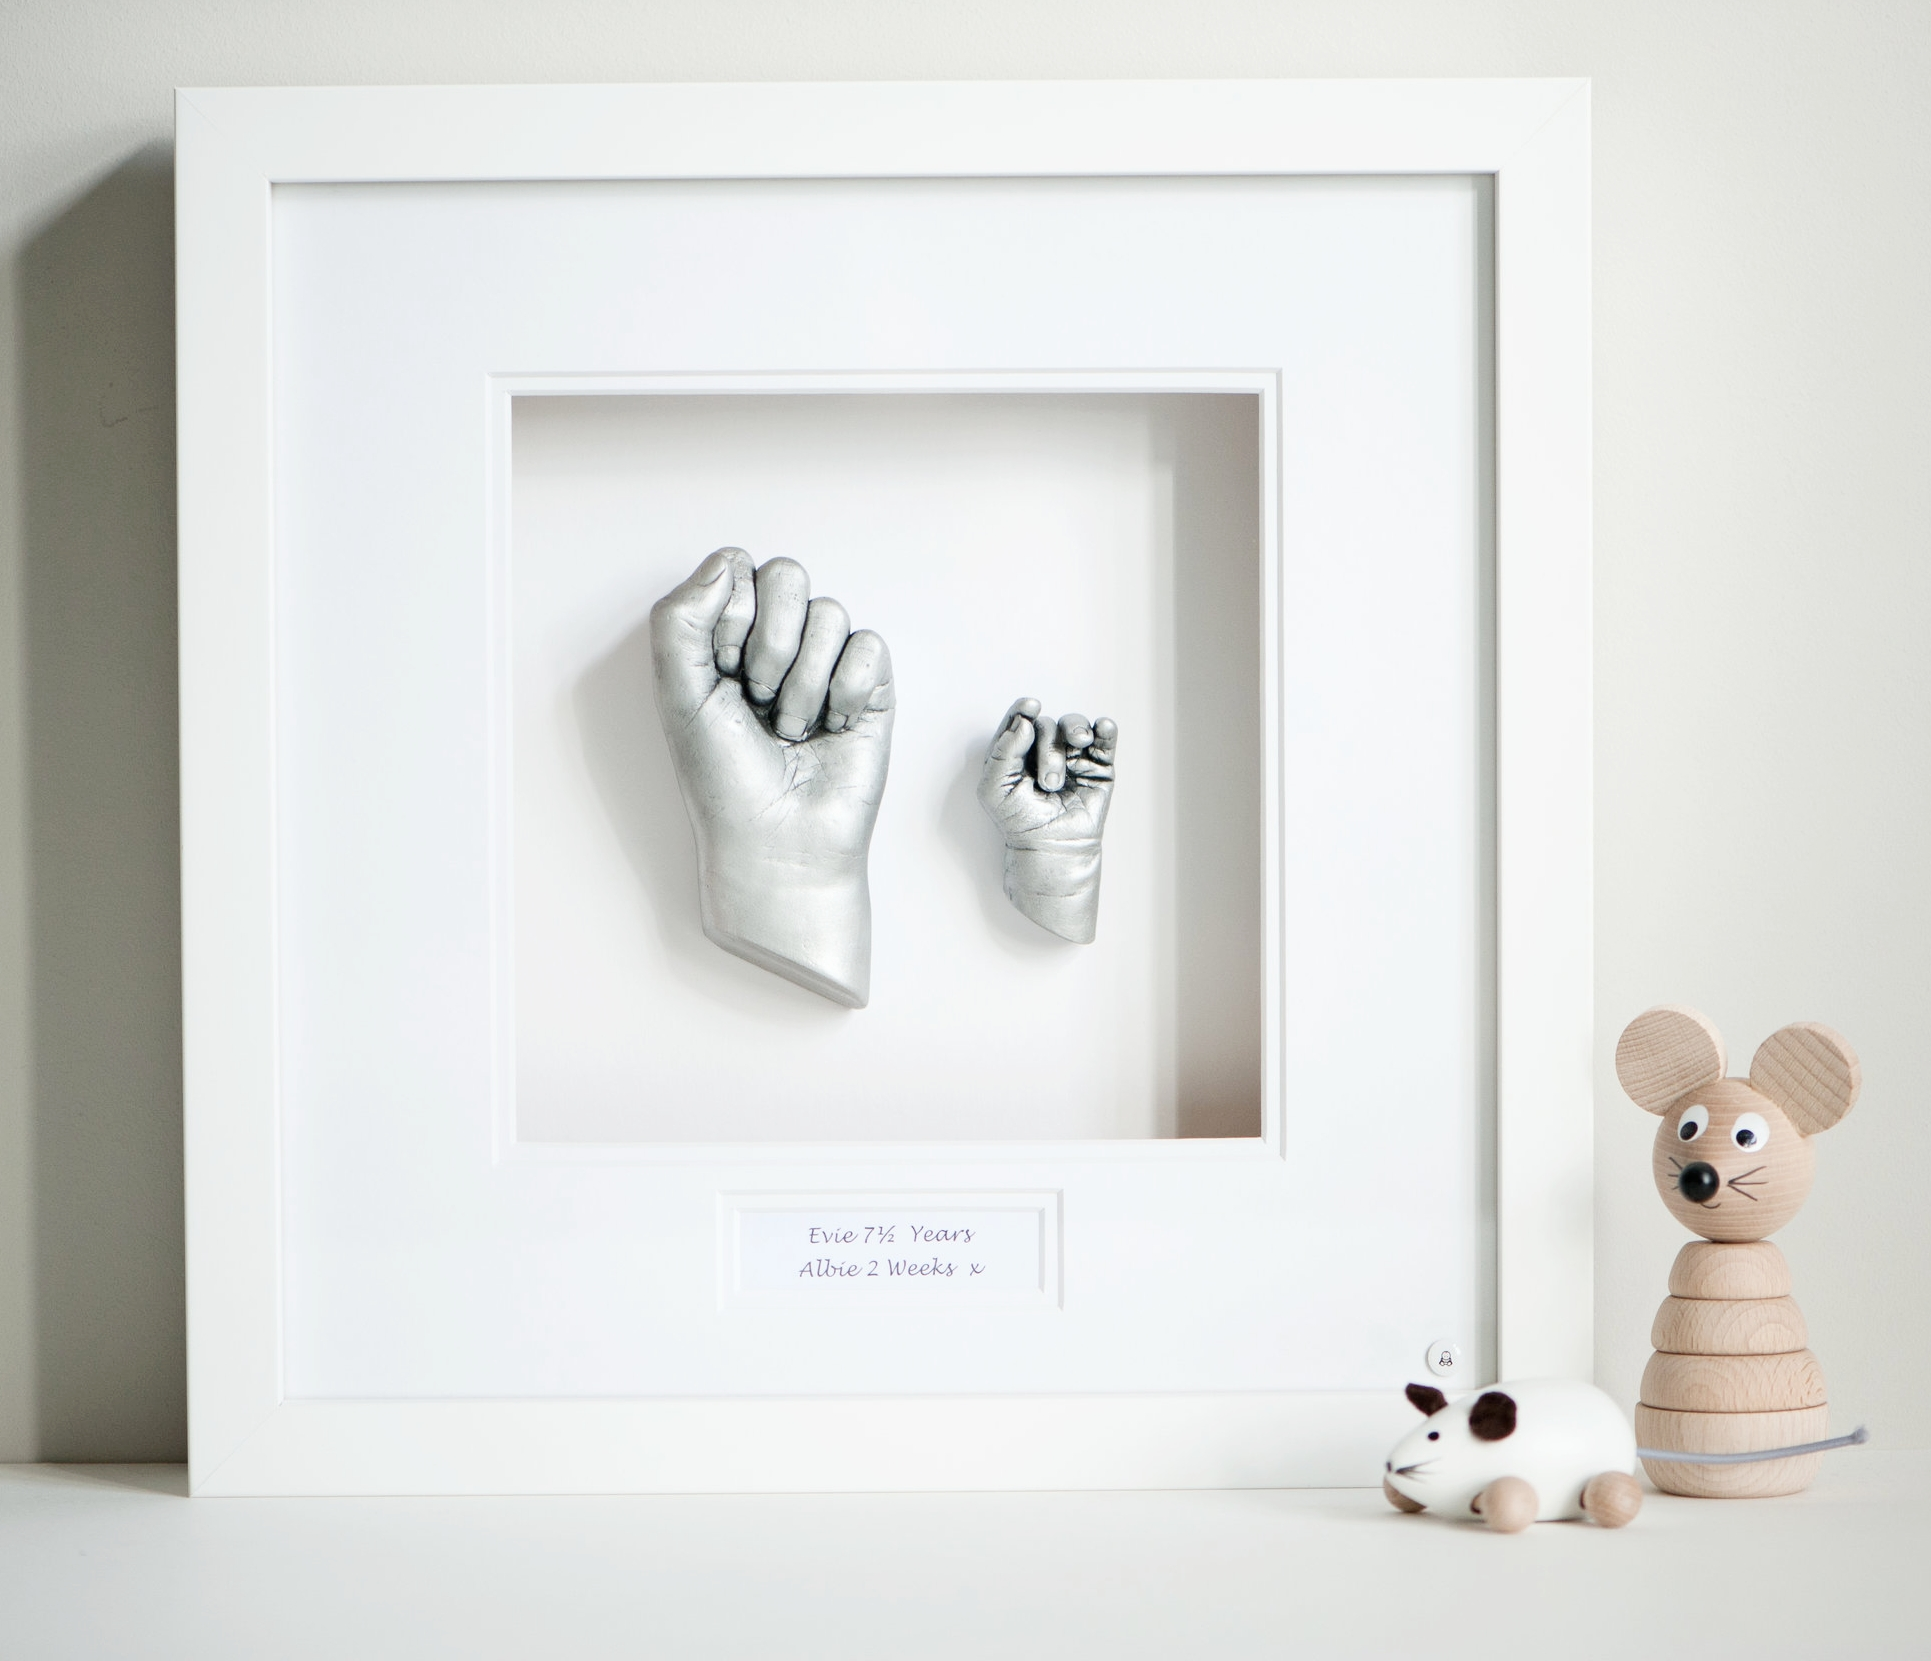 Sibling Hand Castings - White frame - from £135.00